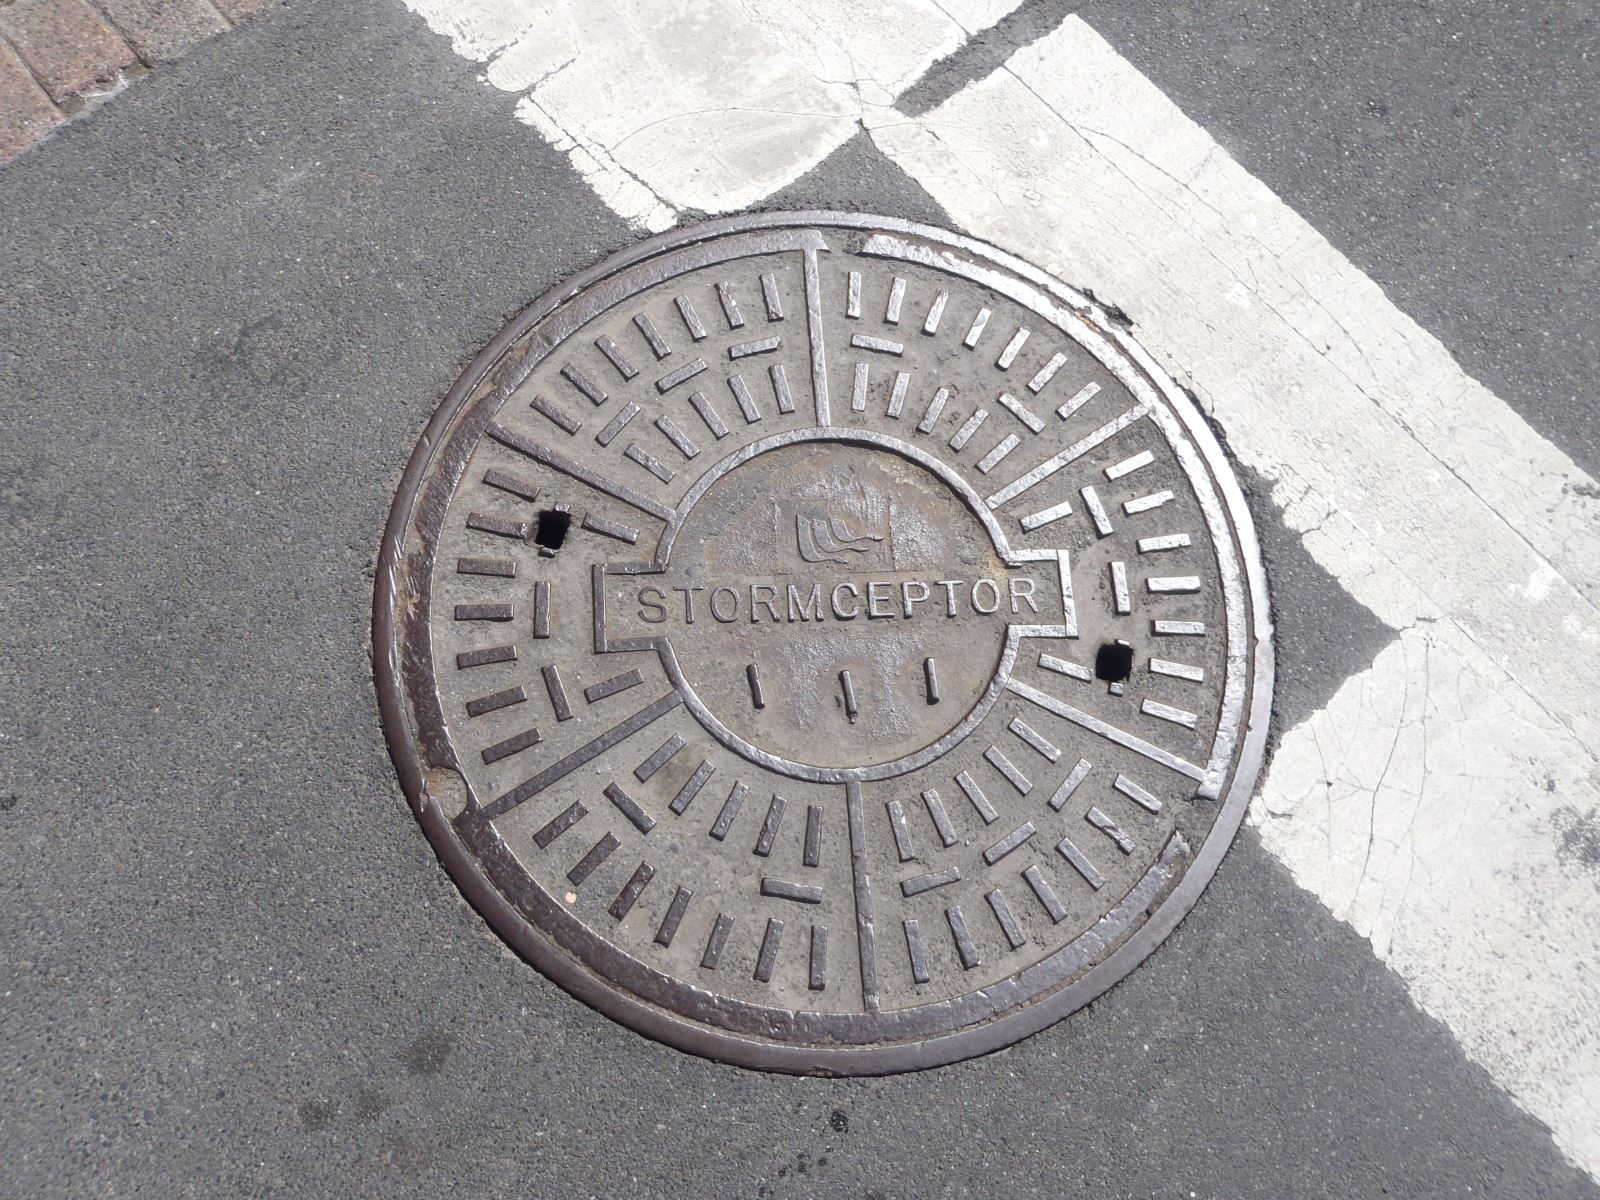 Image of a hydrodynamic separator manhole cover.